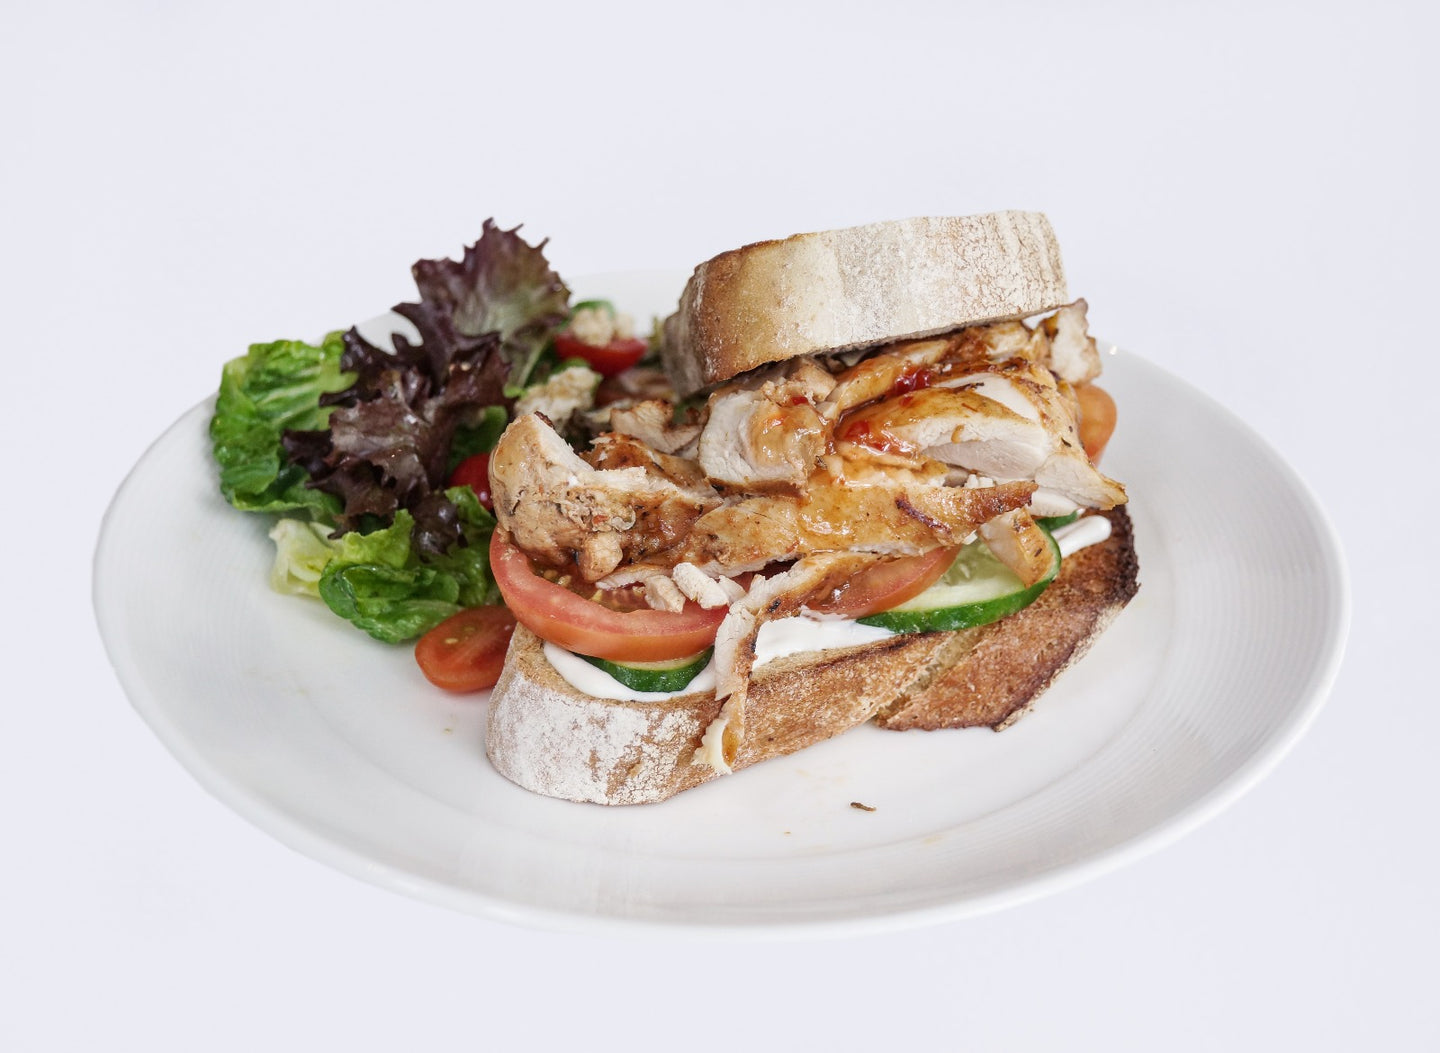 Sandwich: Chicken Sandwich/Wrap